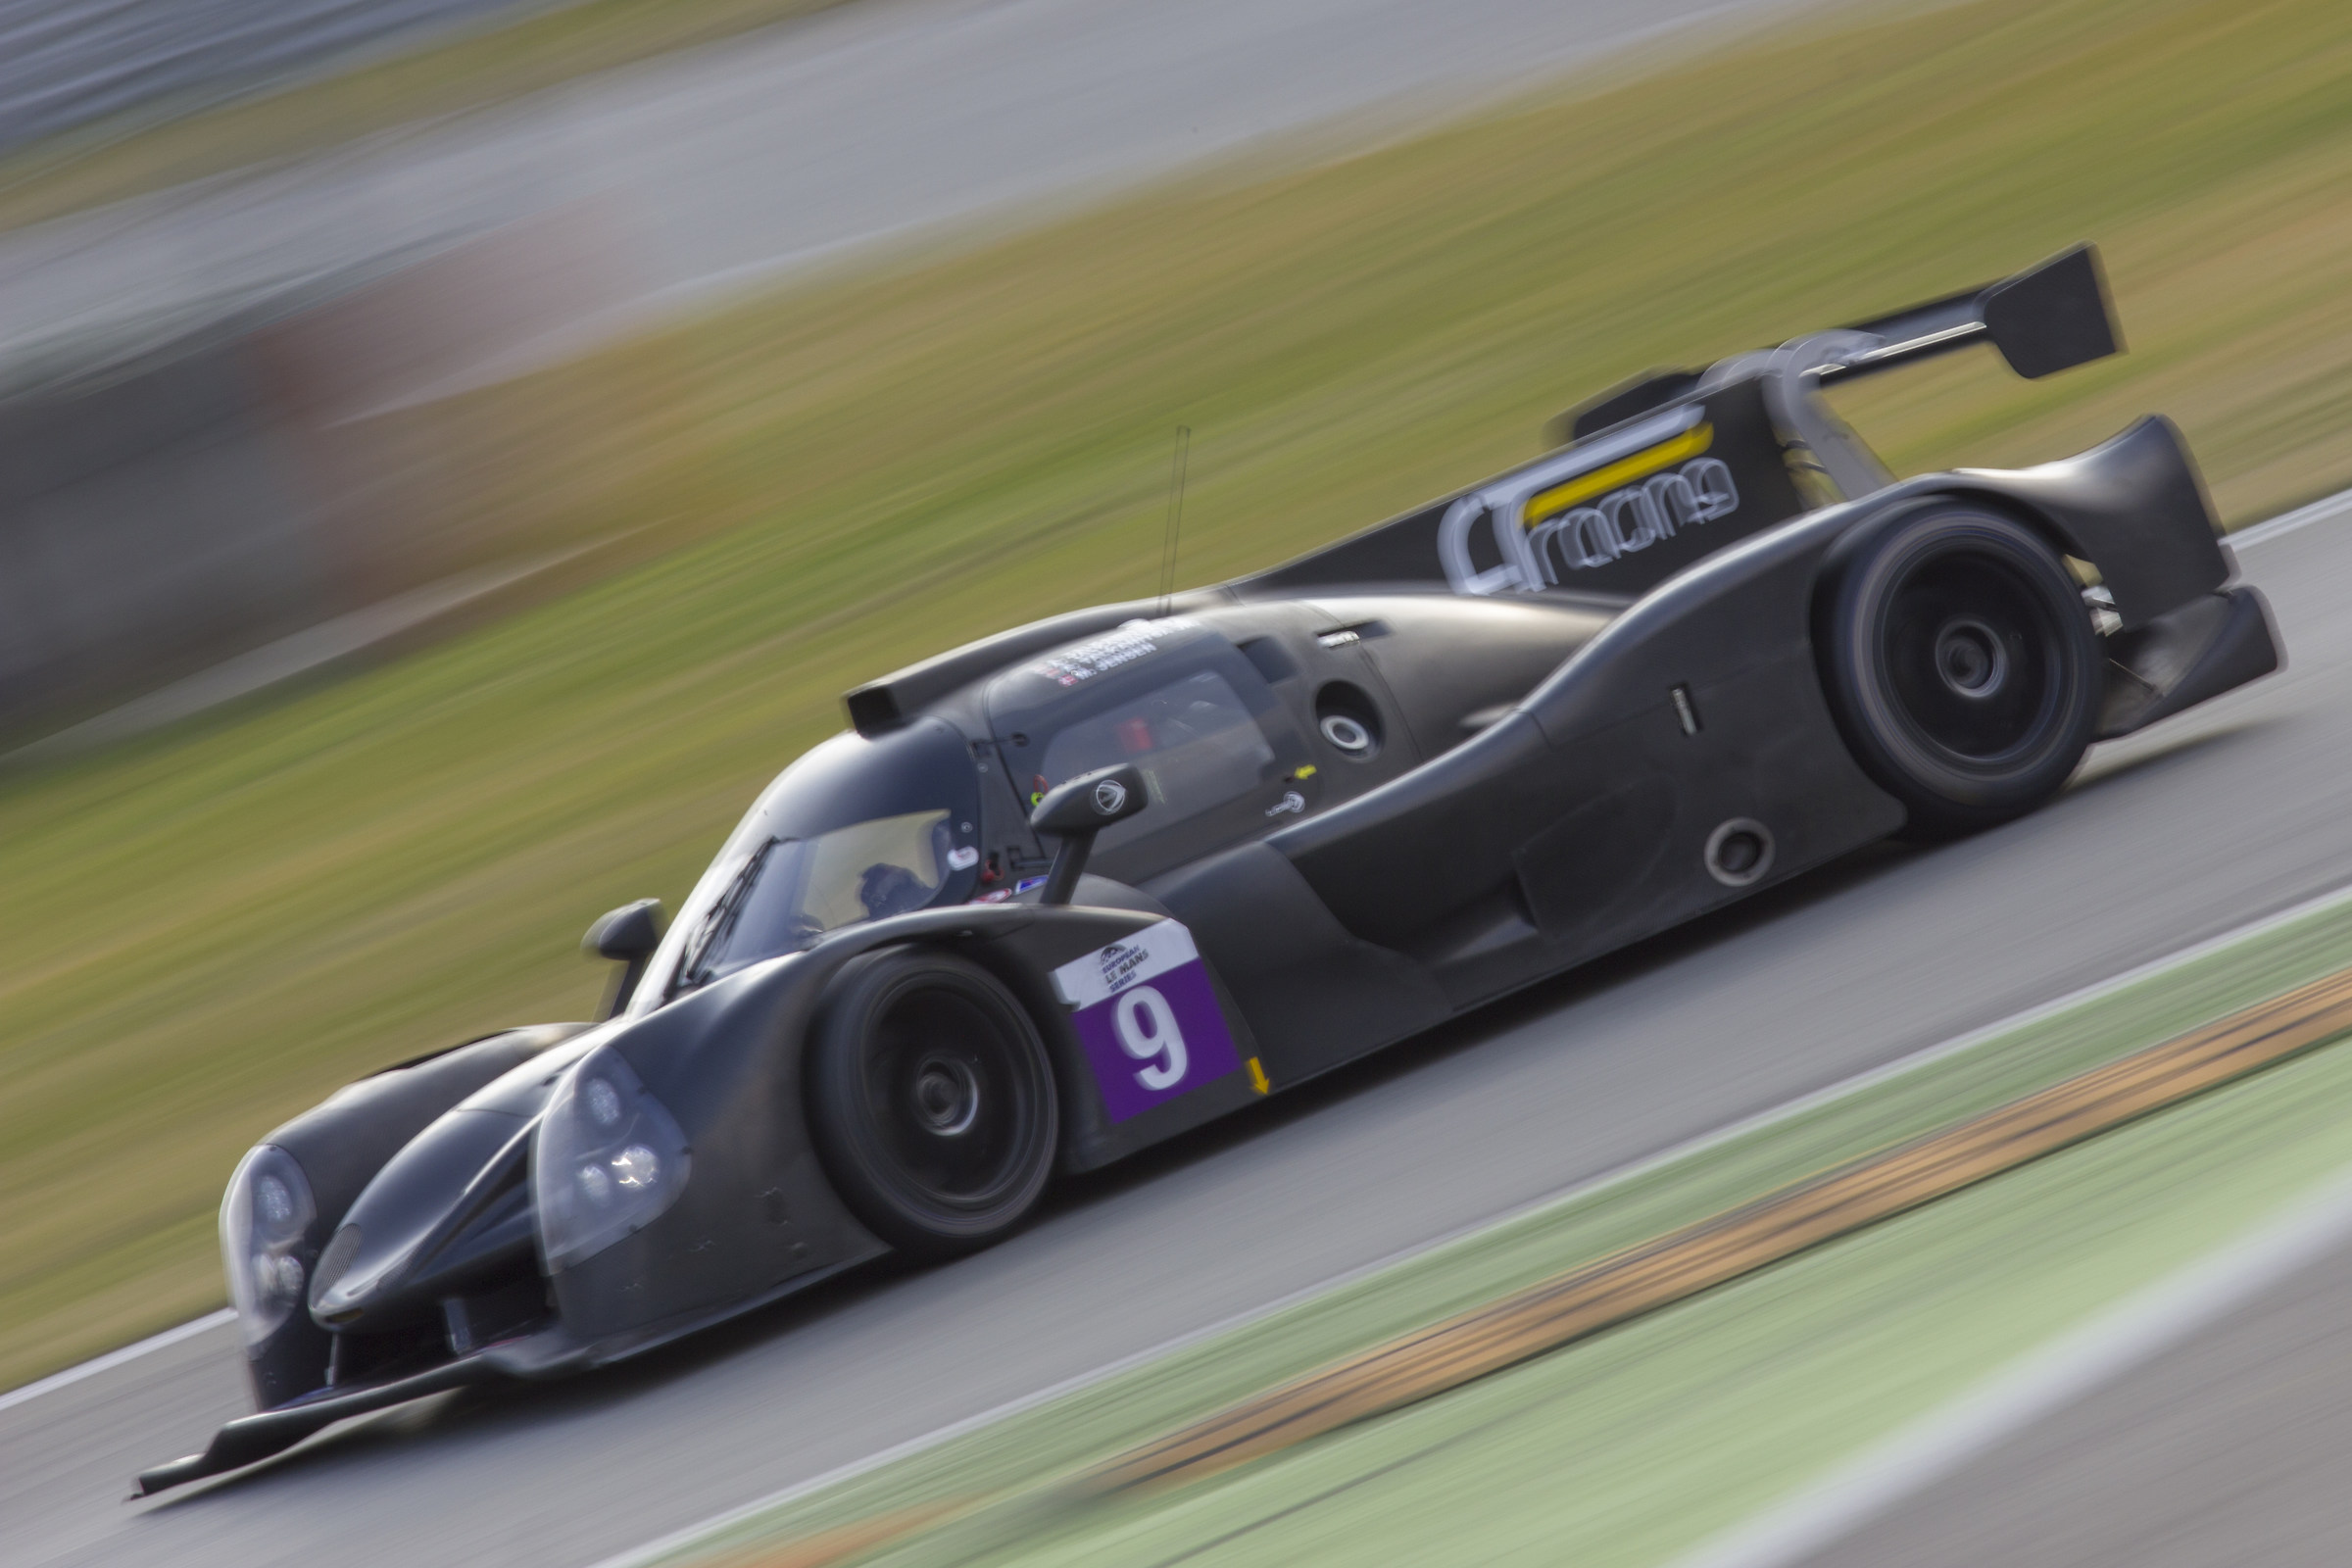 lmp3 to the first variant...